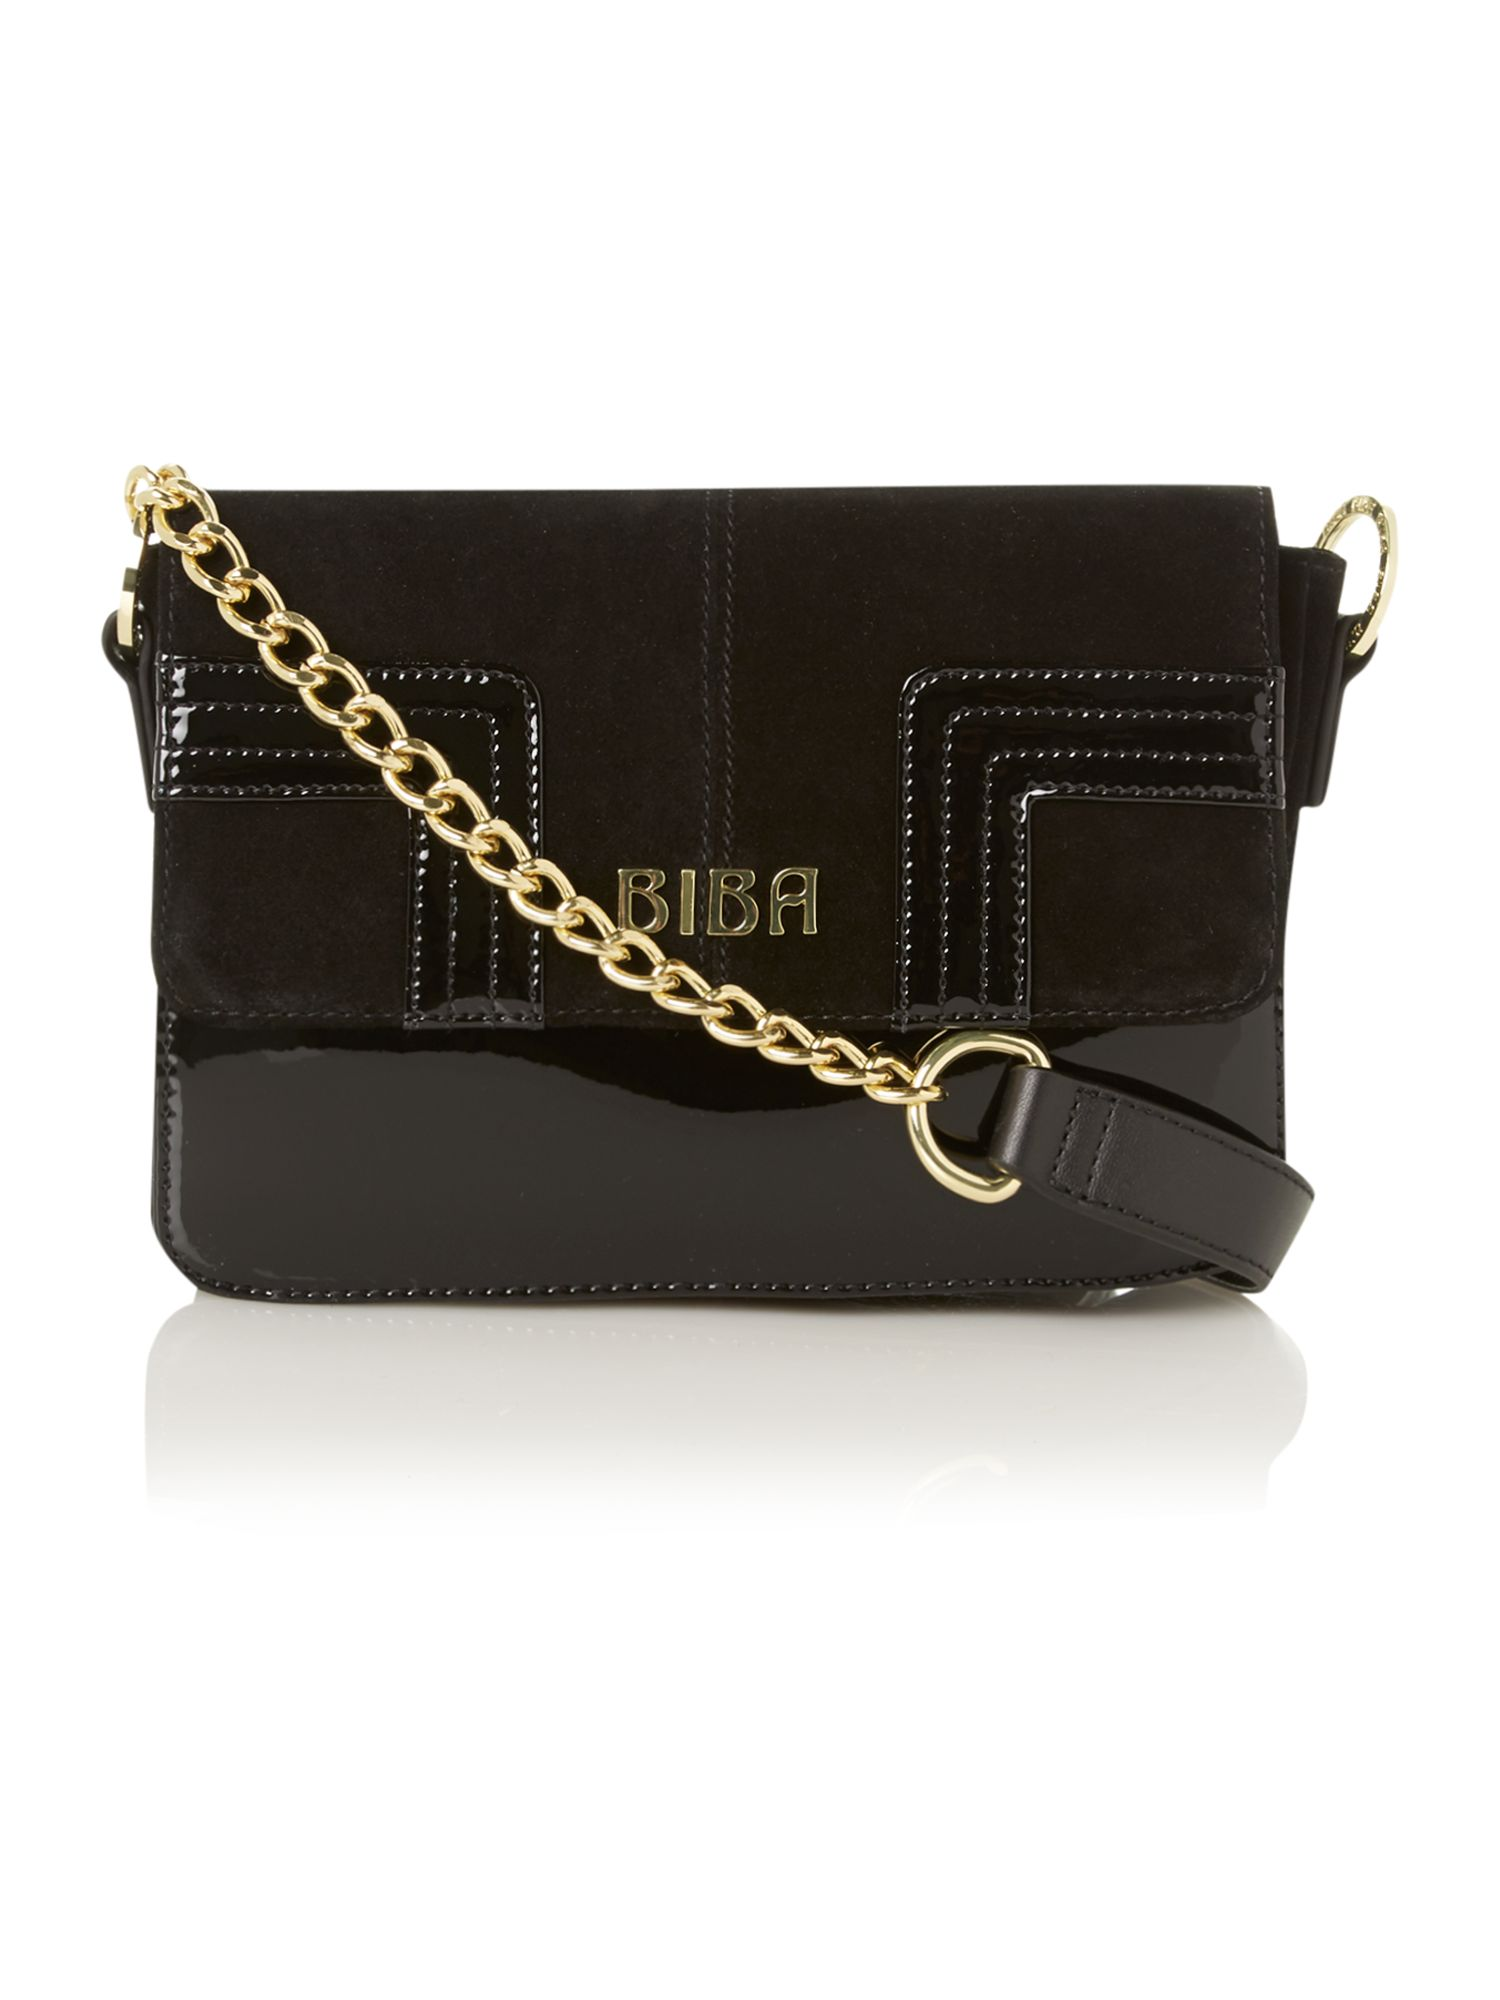 Natasha chain cross body bag